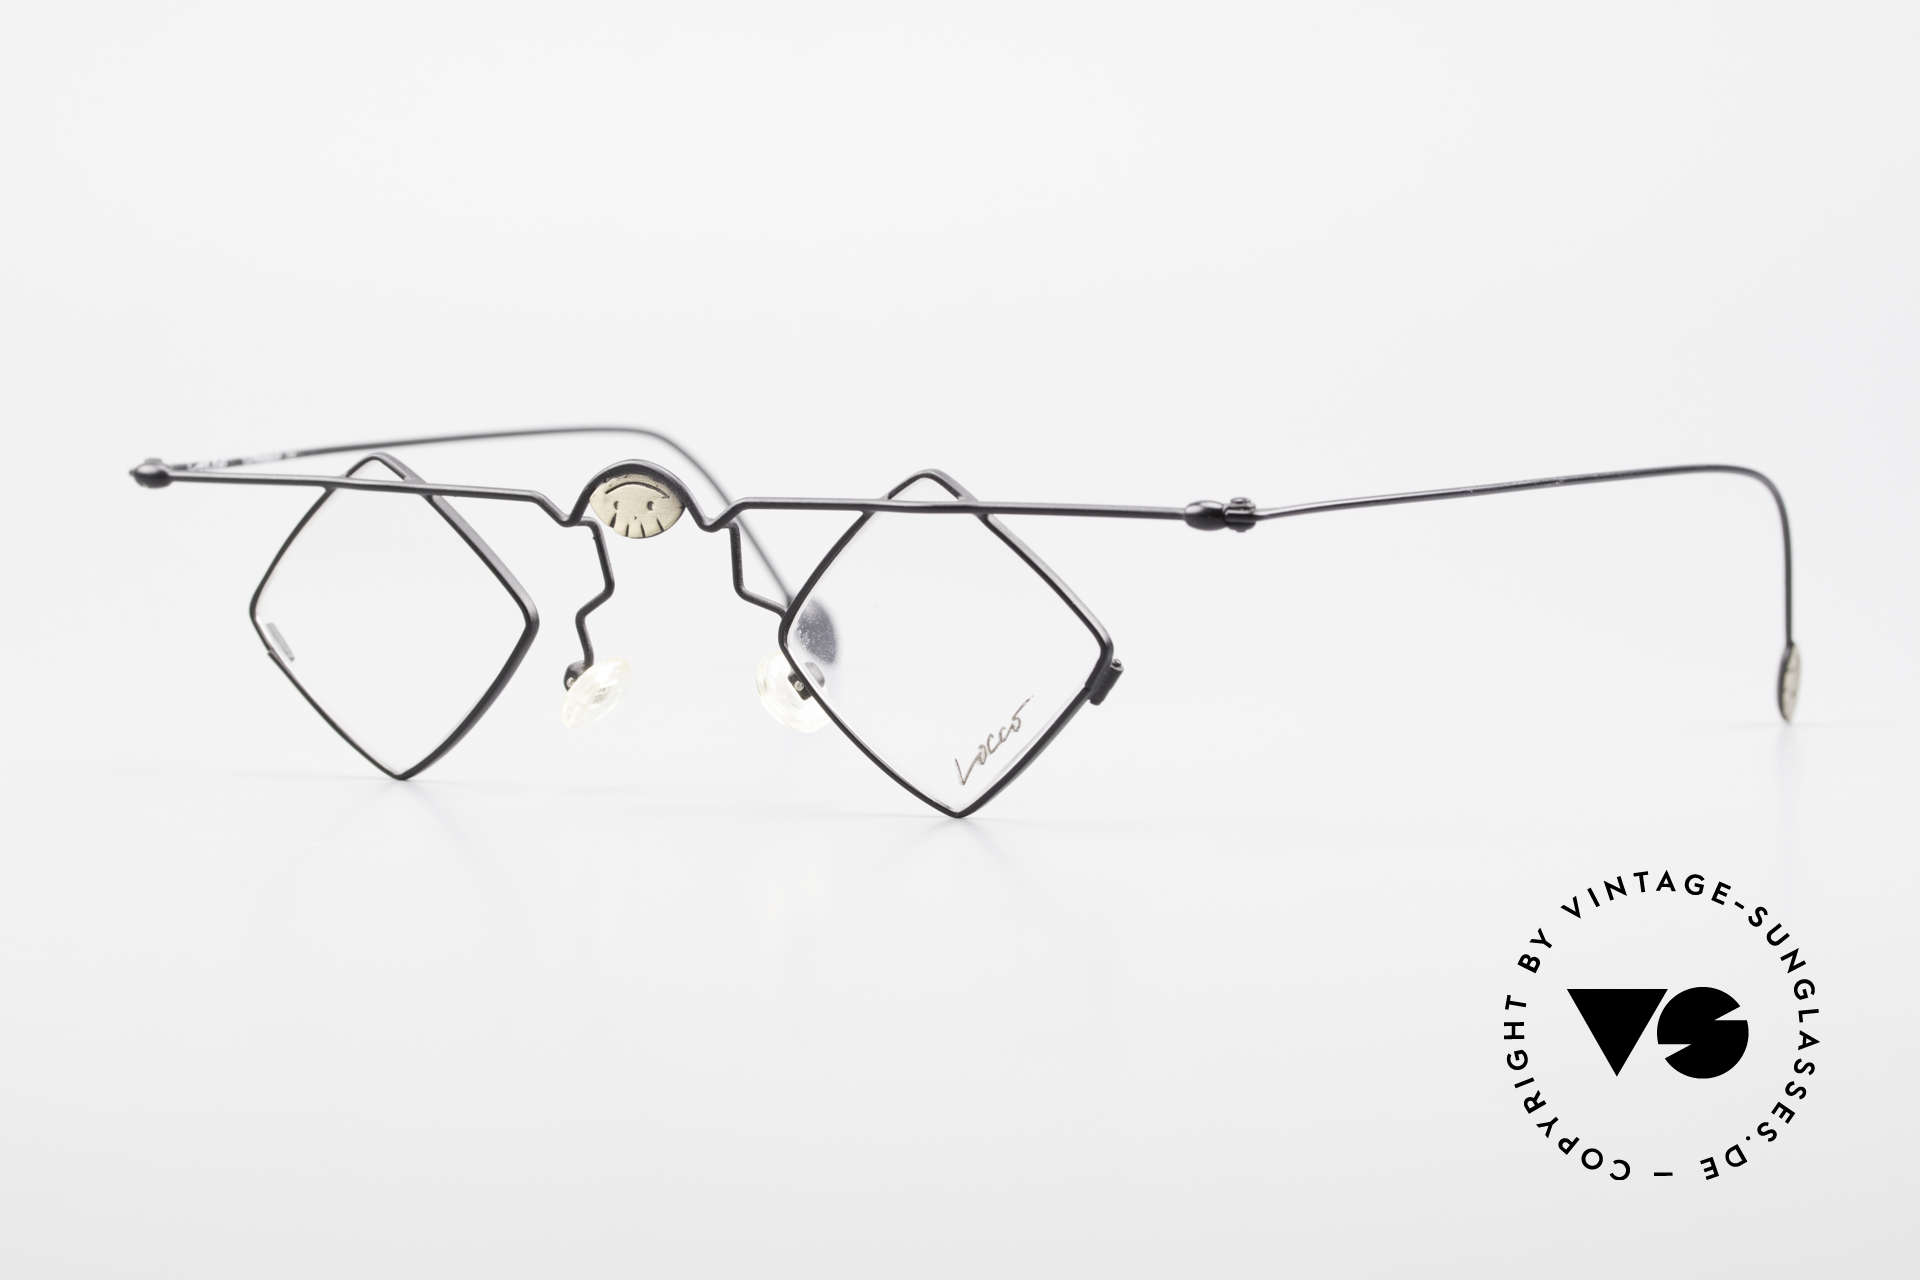 Locco 08 Good Mood Vintage Eyeglasses, good mood eyeglasses with smileys on the frame, Made for Men and Women